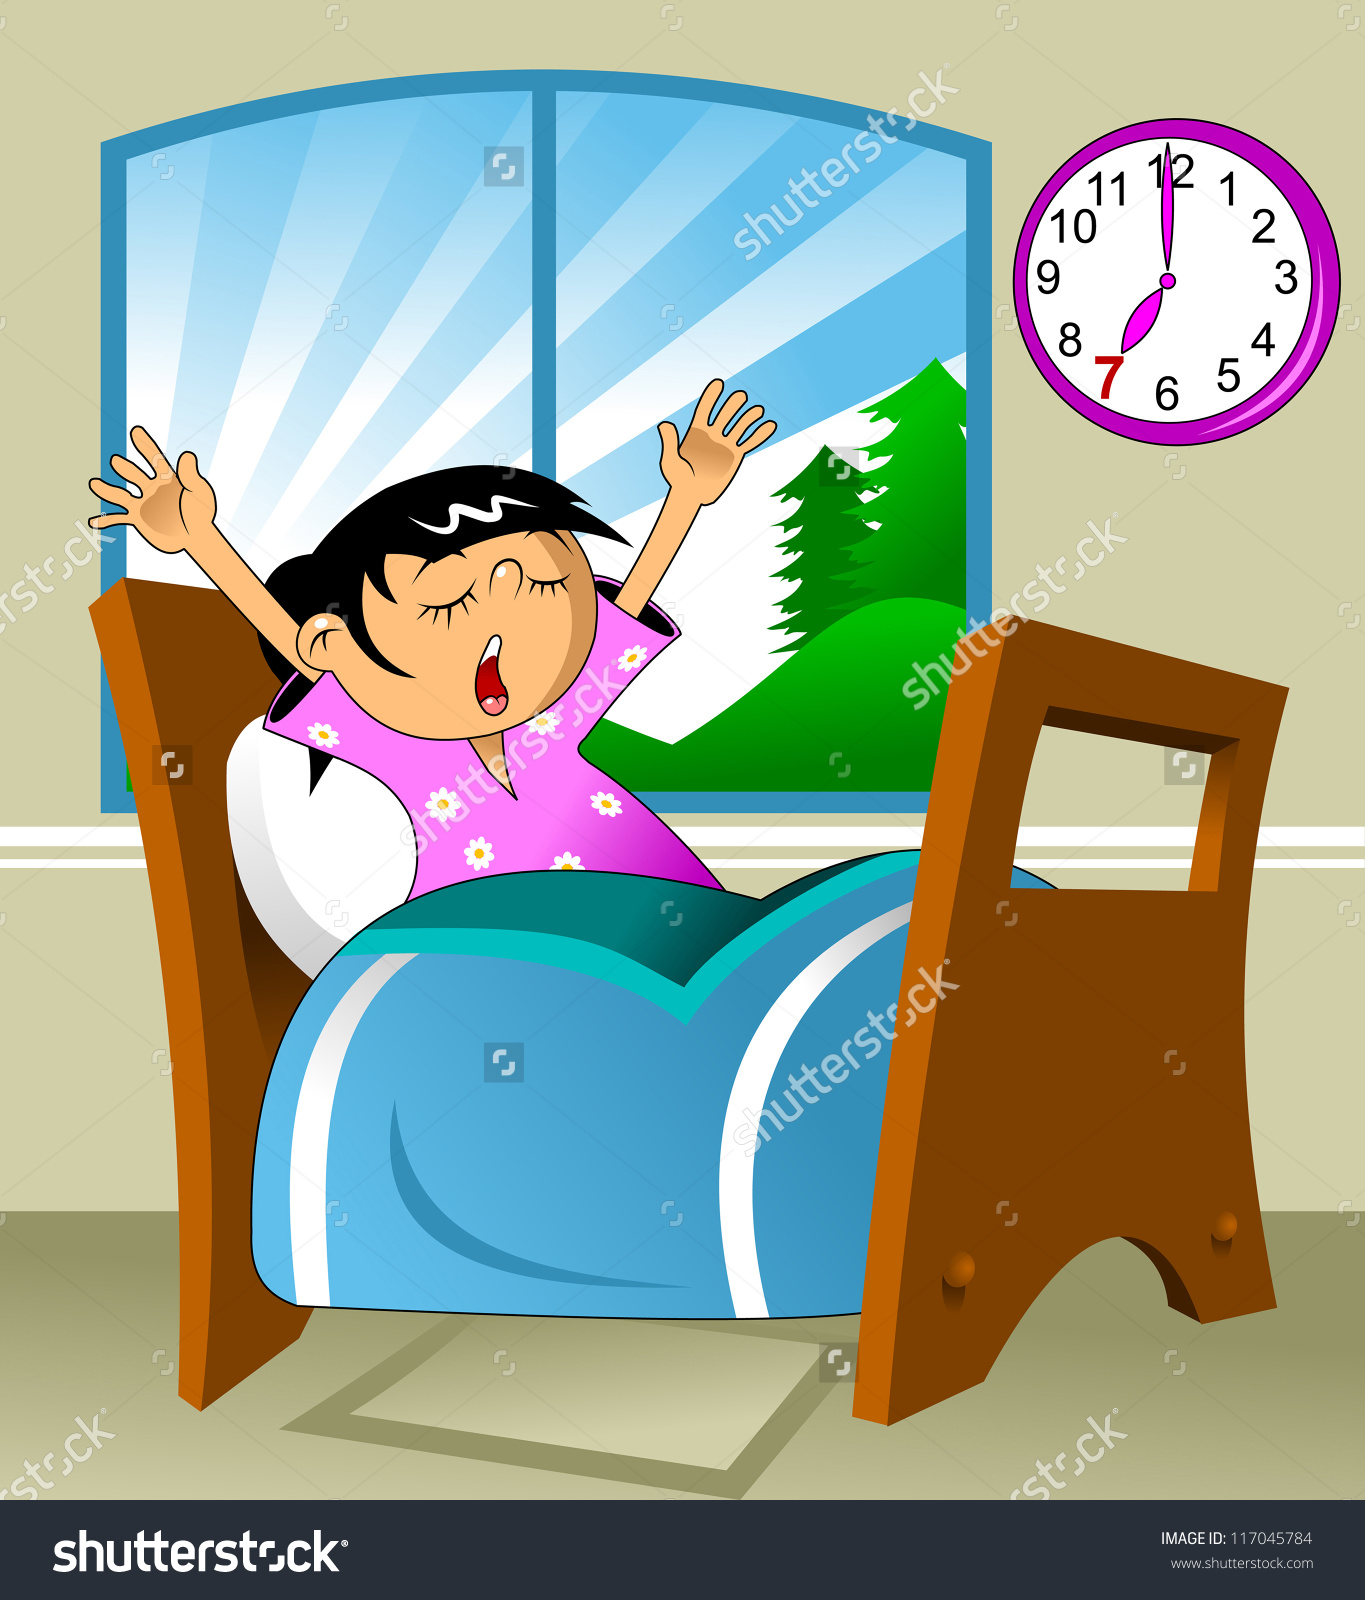 Morning clipart wakeup Wake clipart morning the up